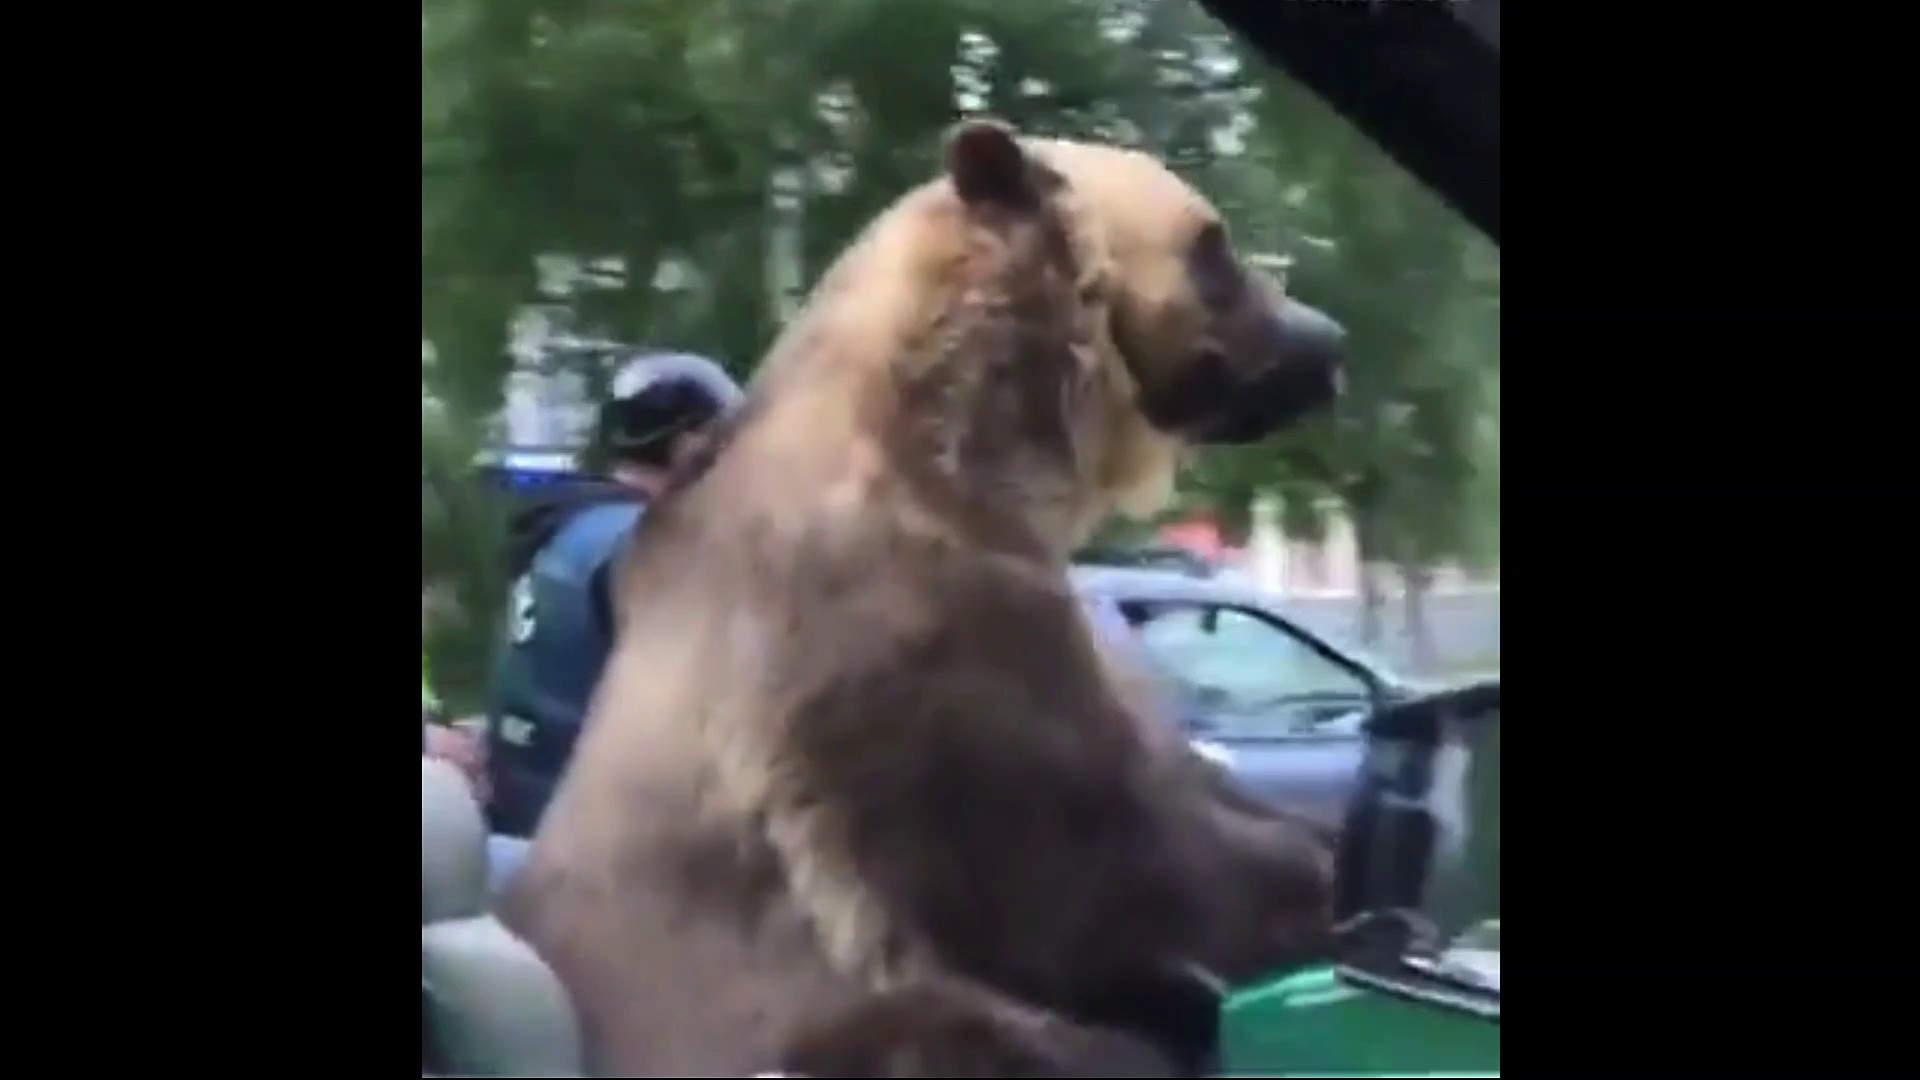 The bear ride tricycle motorcycles